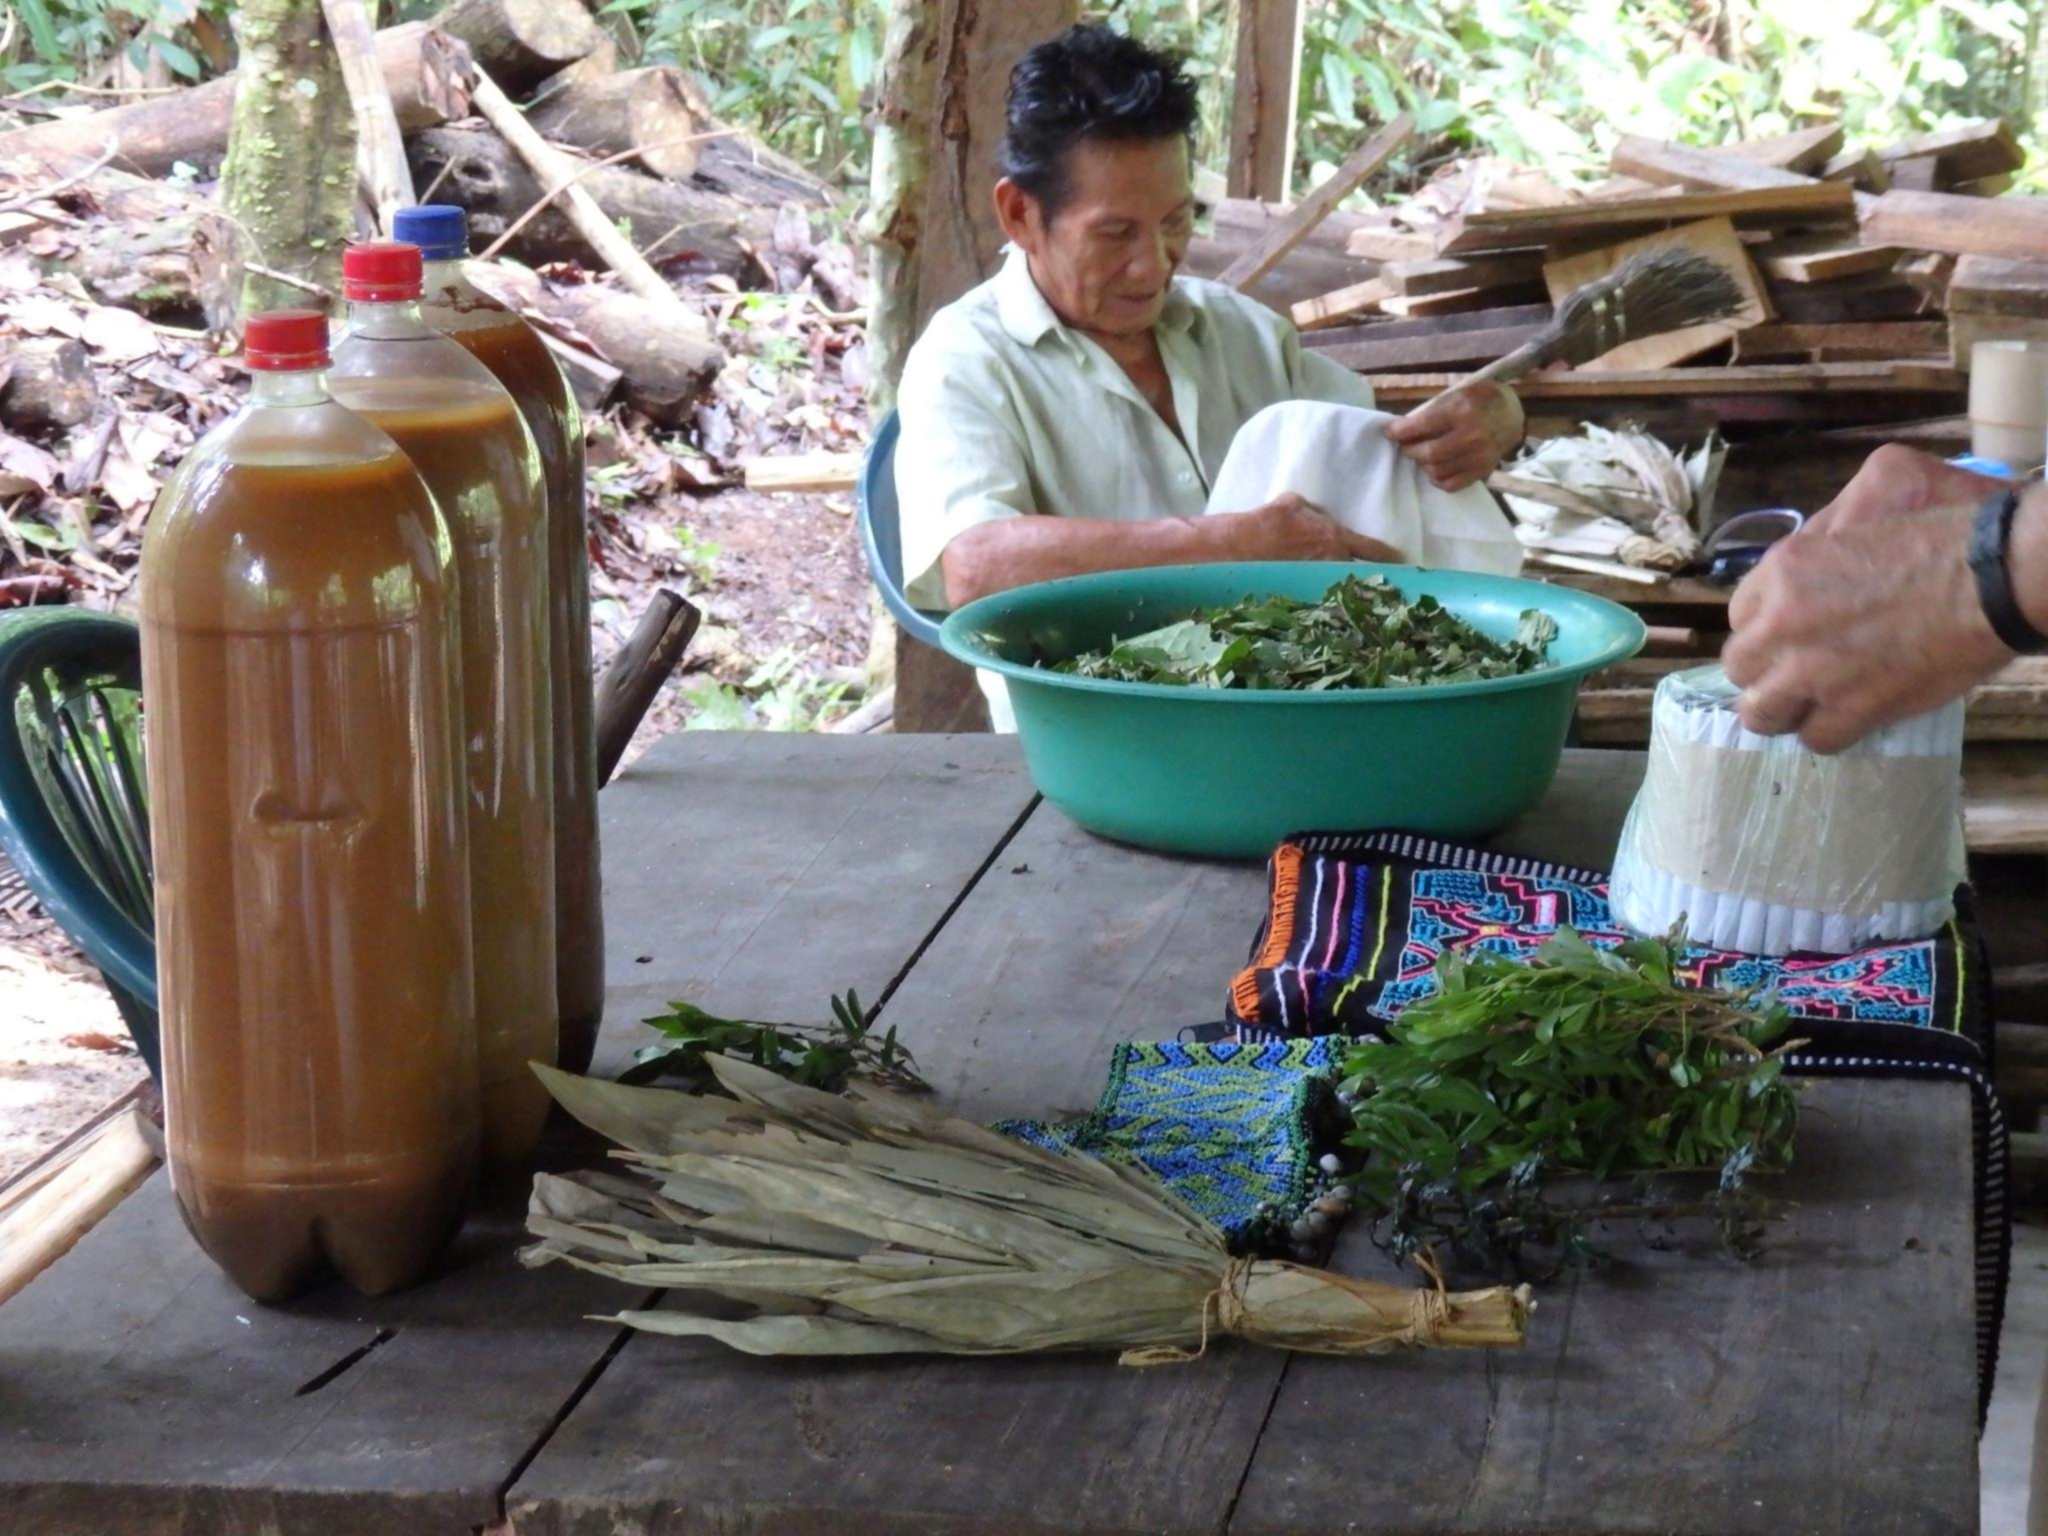 The Ayahuasca brew, chakapa (bundle of dried leaves), shipibo artwork, mapacho cigarettes & chacruna leaves. Don Rober sits in the background. Photo: Melanie Crandall